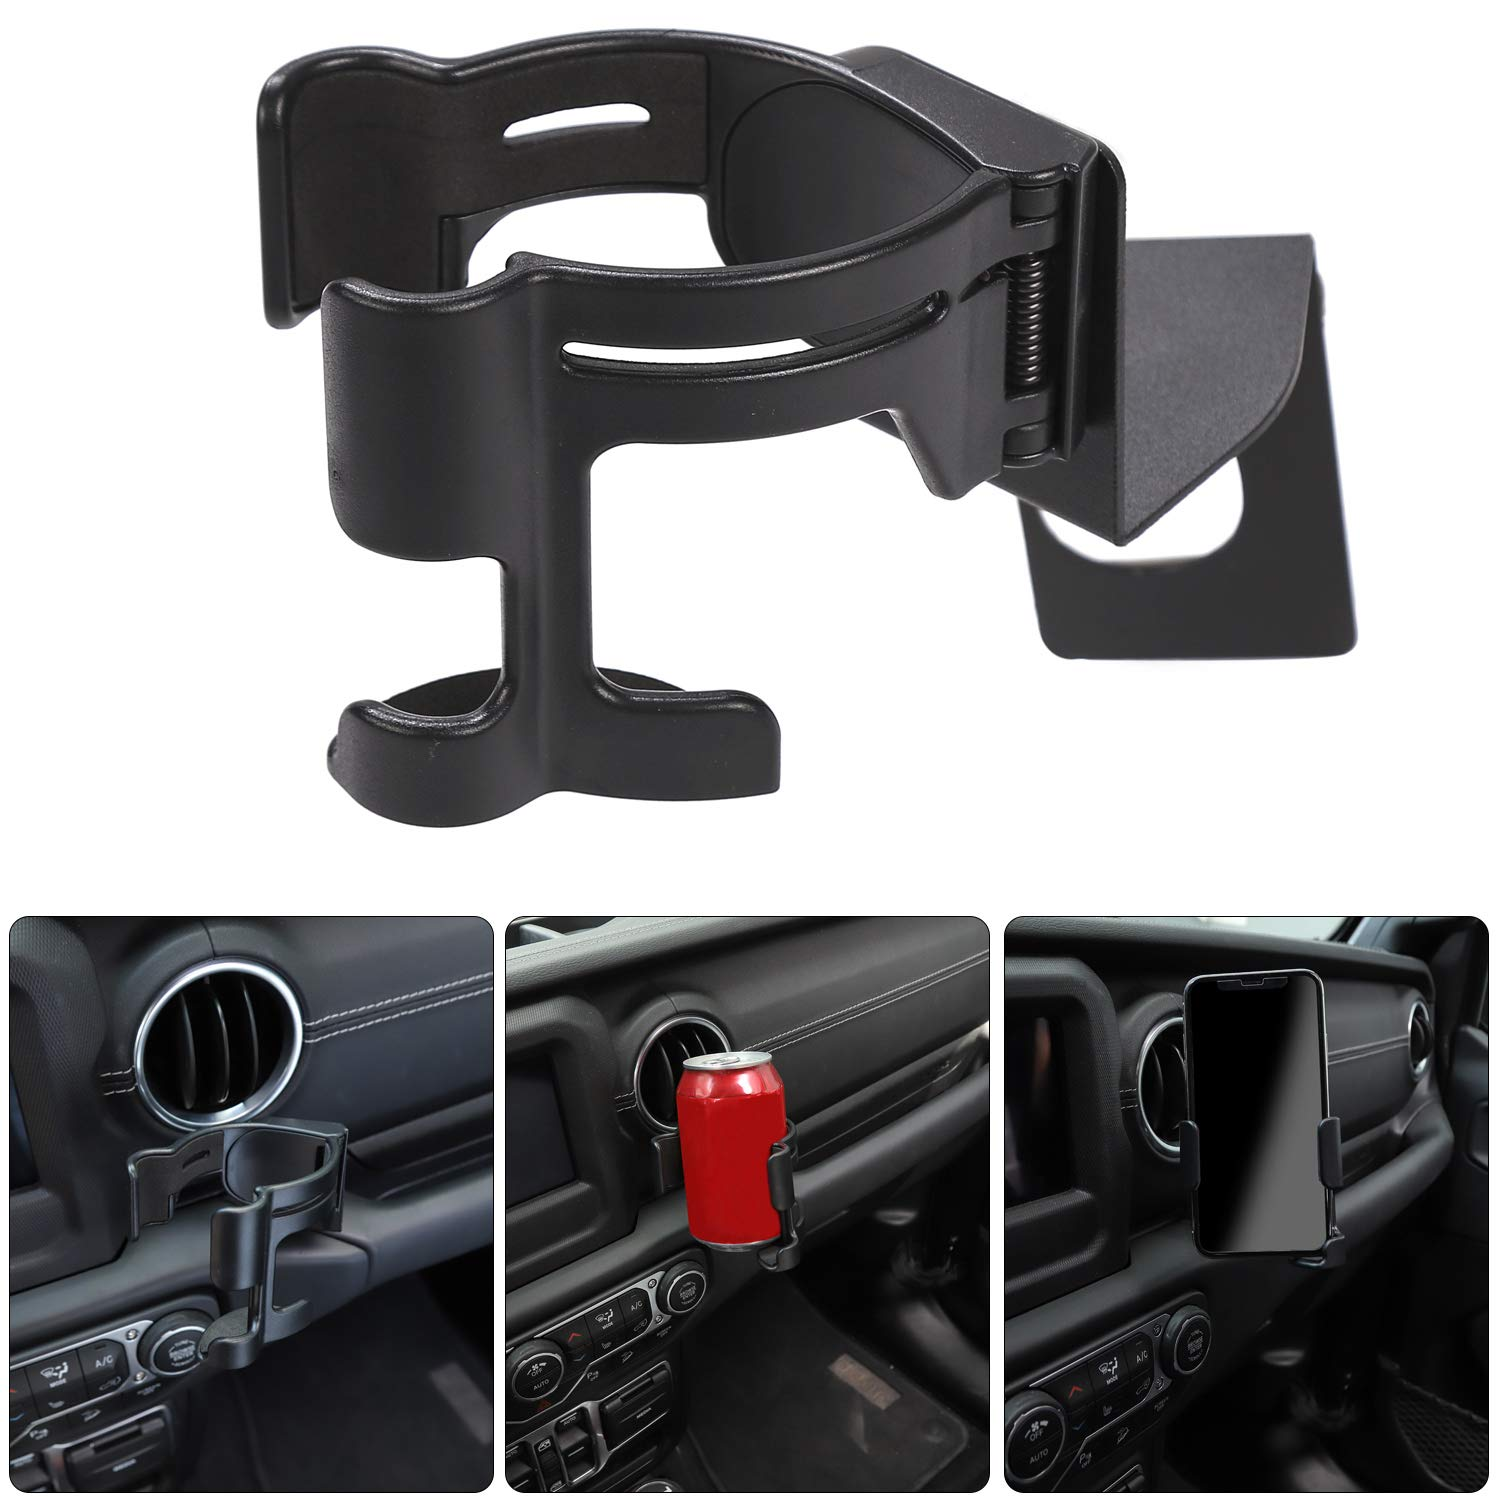 Multi-Function Cup Holder Phone Mount Bolt-on Stand Bracket Organizer for 2018 Jeep Wrangler JL /& Unlimited Voodonalagga